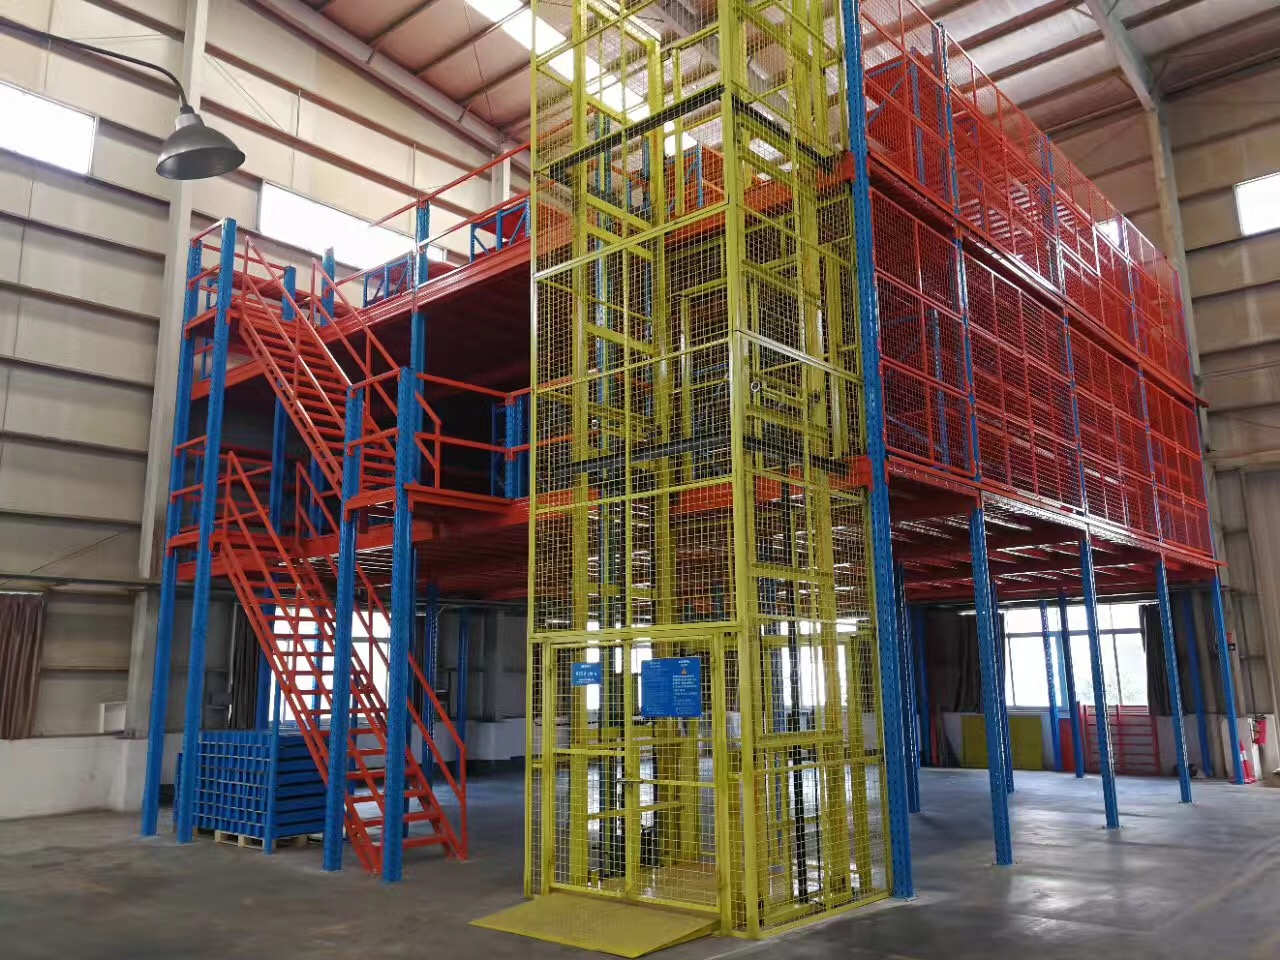 3 Floors of Mezzanine with Cargo Eelvator